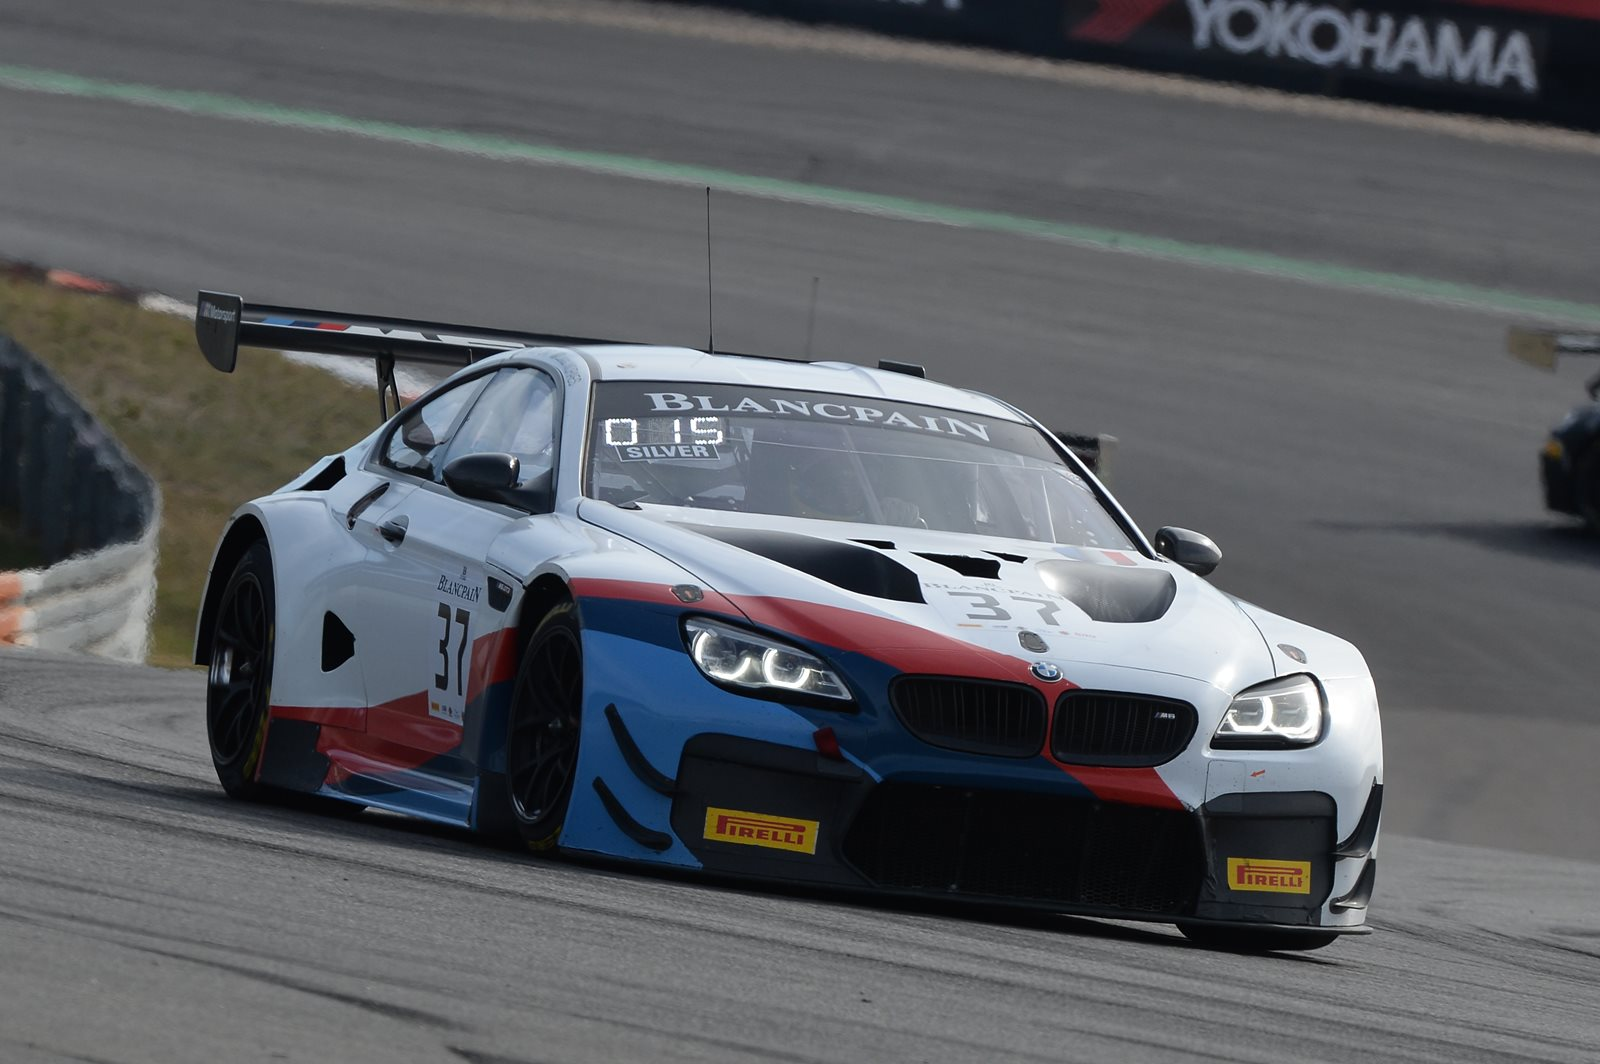 Photo of Blancpain – Com 3º lugar em Nürburgring, Lukas Moraes fecha no pódio a temporada do Blancpain GT Series